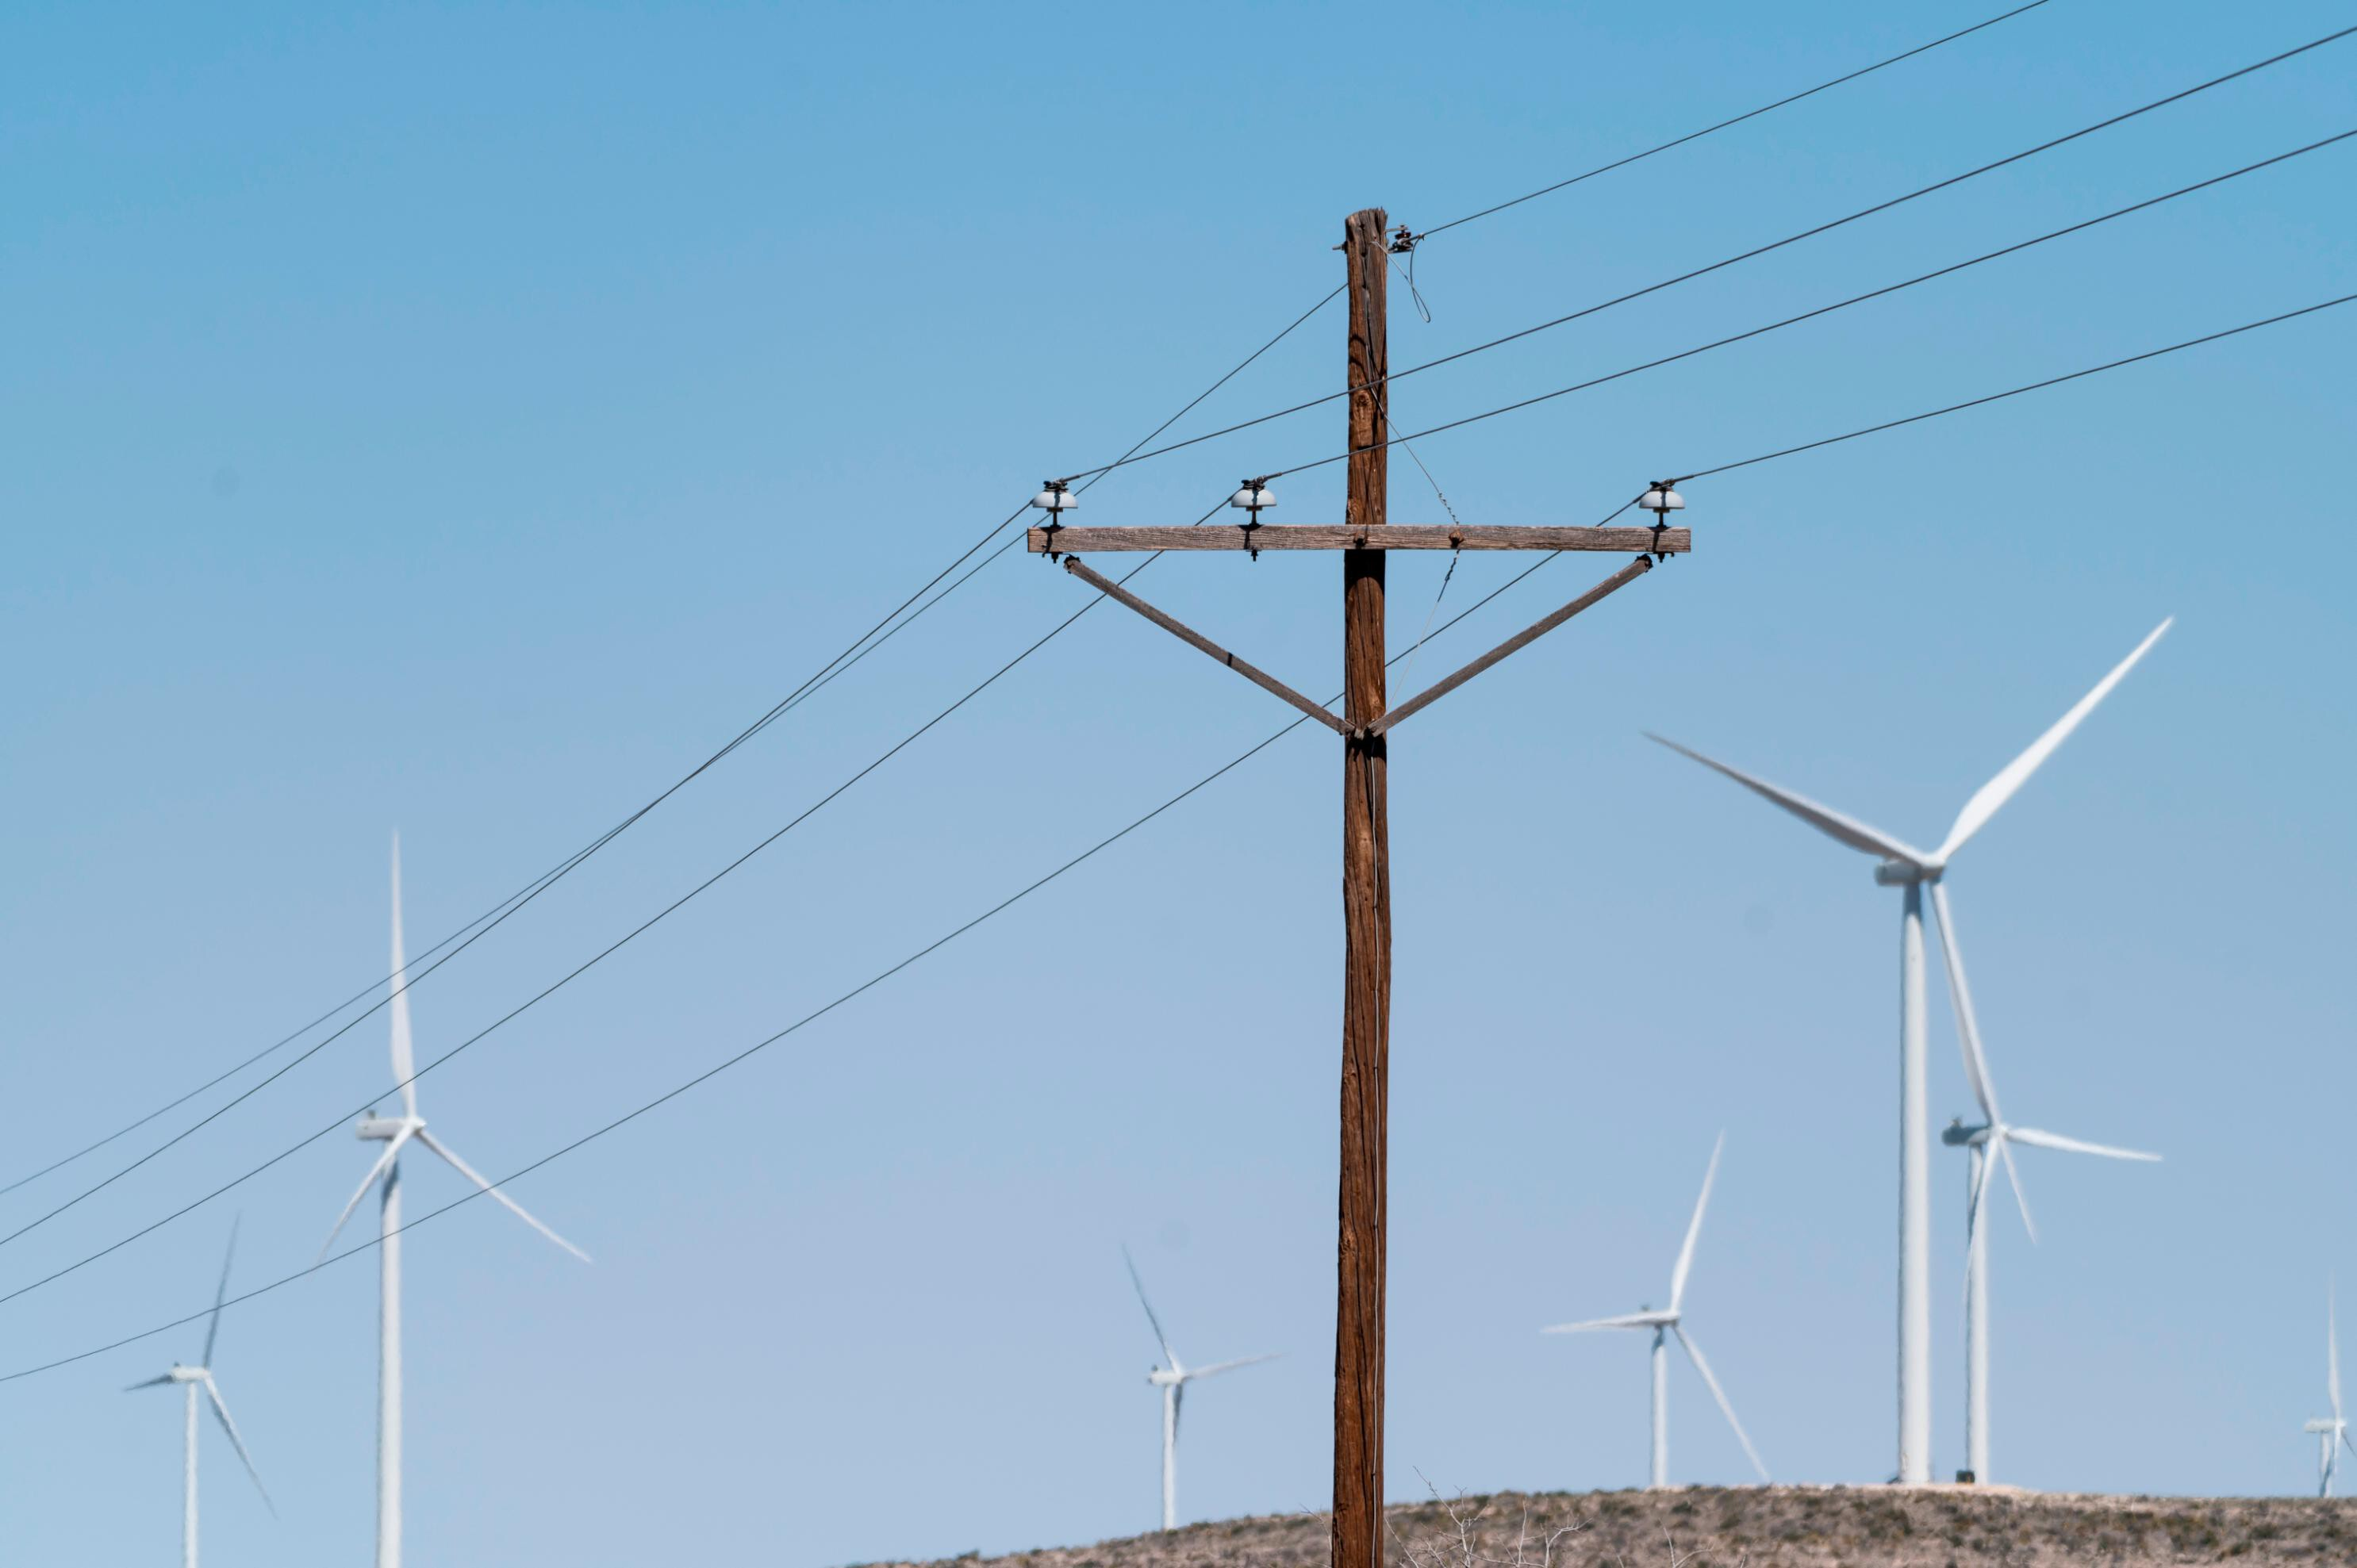 House lawmakers release early details of program that would overhaul electricity sector and slash fossil fuel emissions